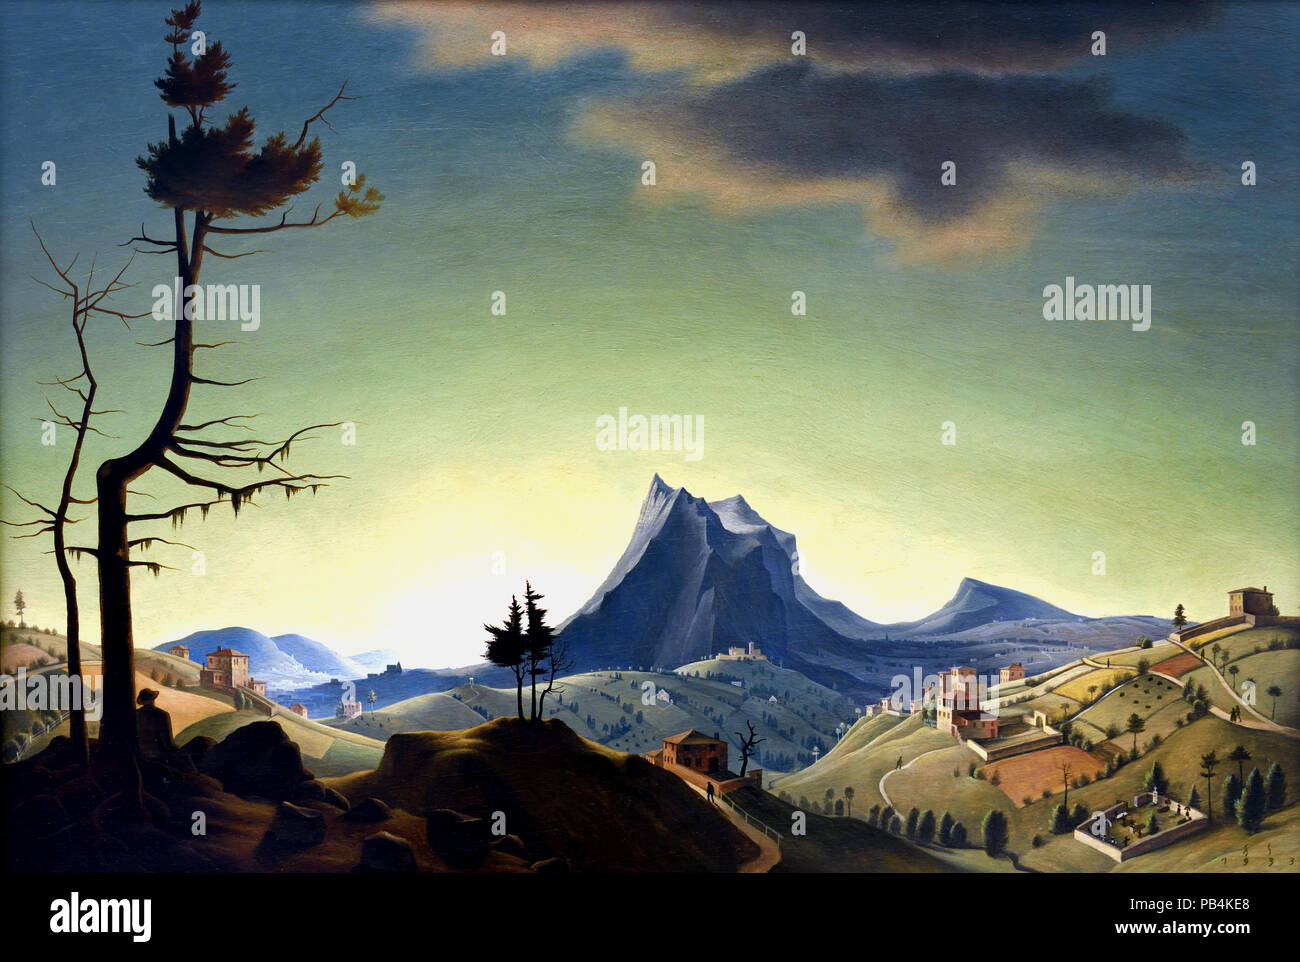 Evening Landscape 1933 Franz Sedlacek (1891–1945)  Austrian painter who belonged to the tradition known as 'New Objectivity' ('neue Sachlichkeit'), an artistic movement similar to Magical Realism. - Stock Image